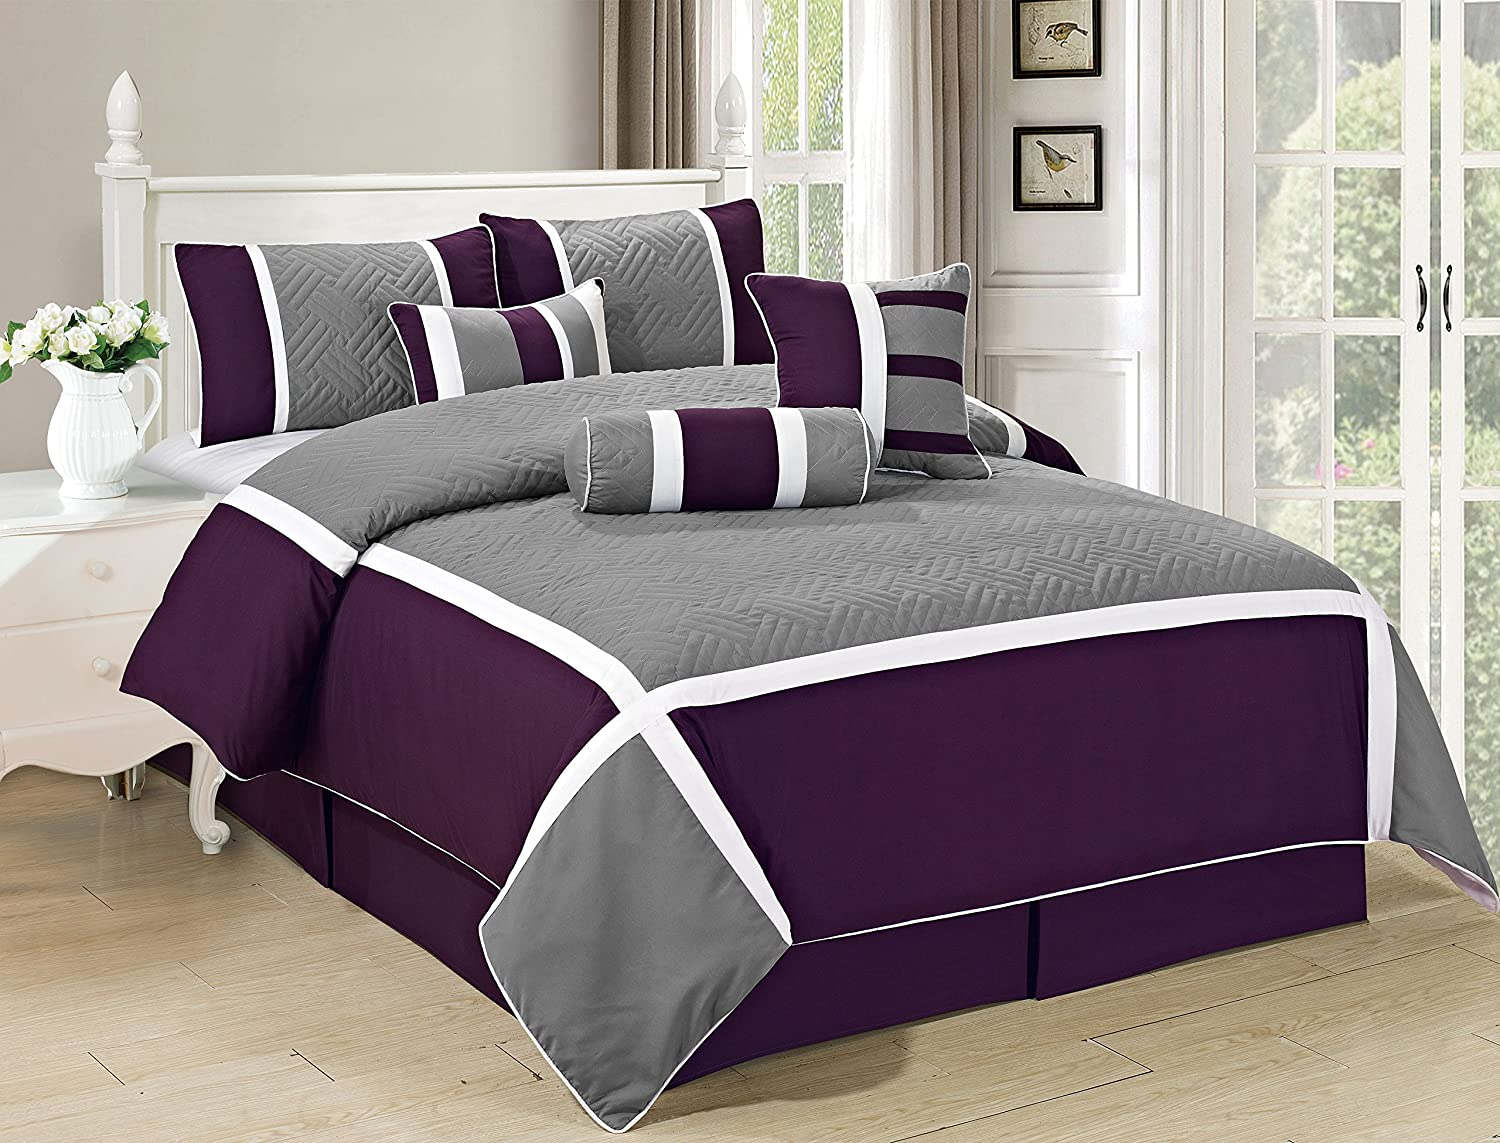 All American Collection New 7 Piece Embroidered Over-Sized Comforter Set (Cal King, Purple/Grey)